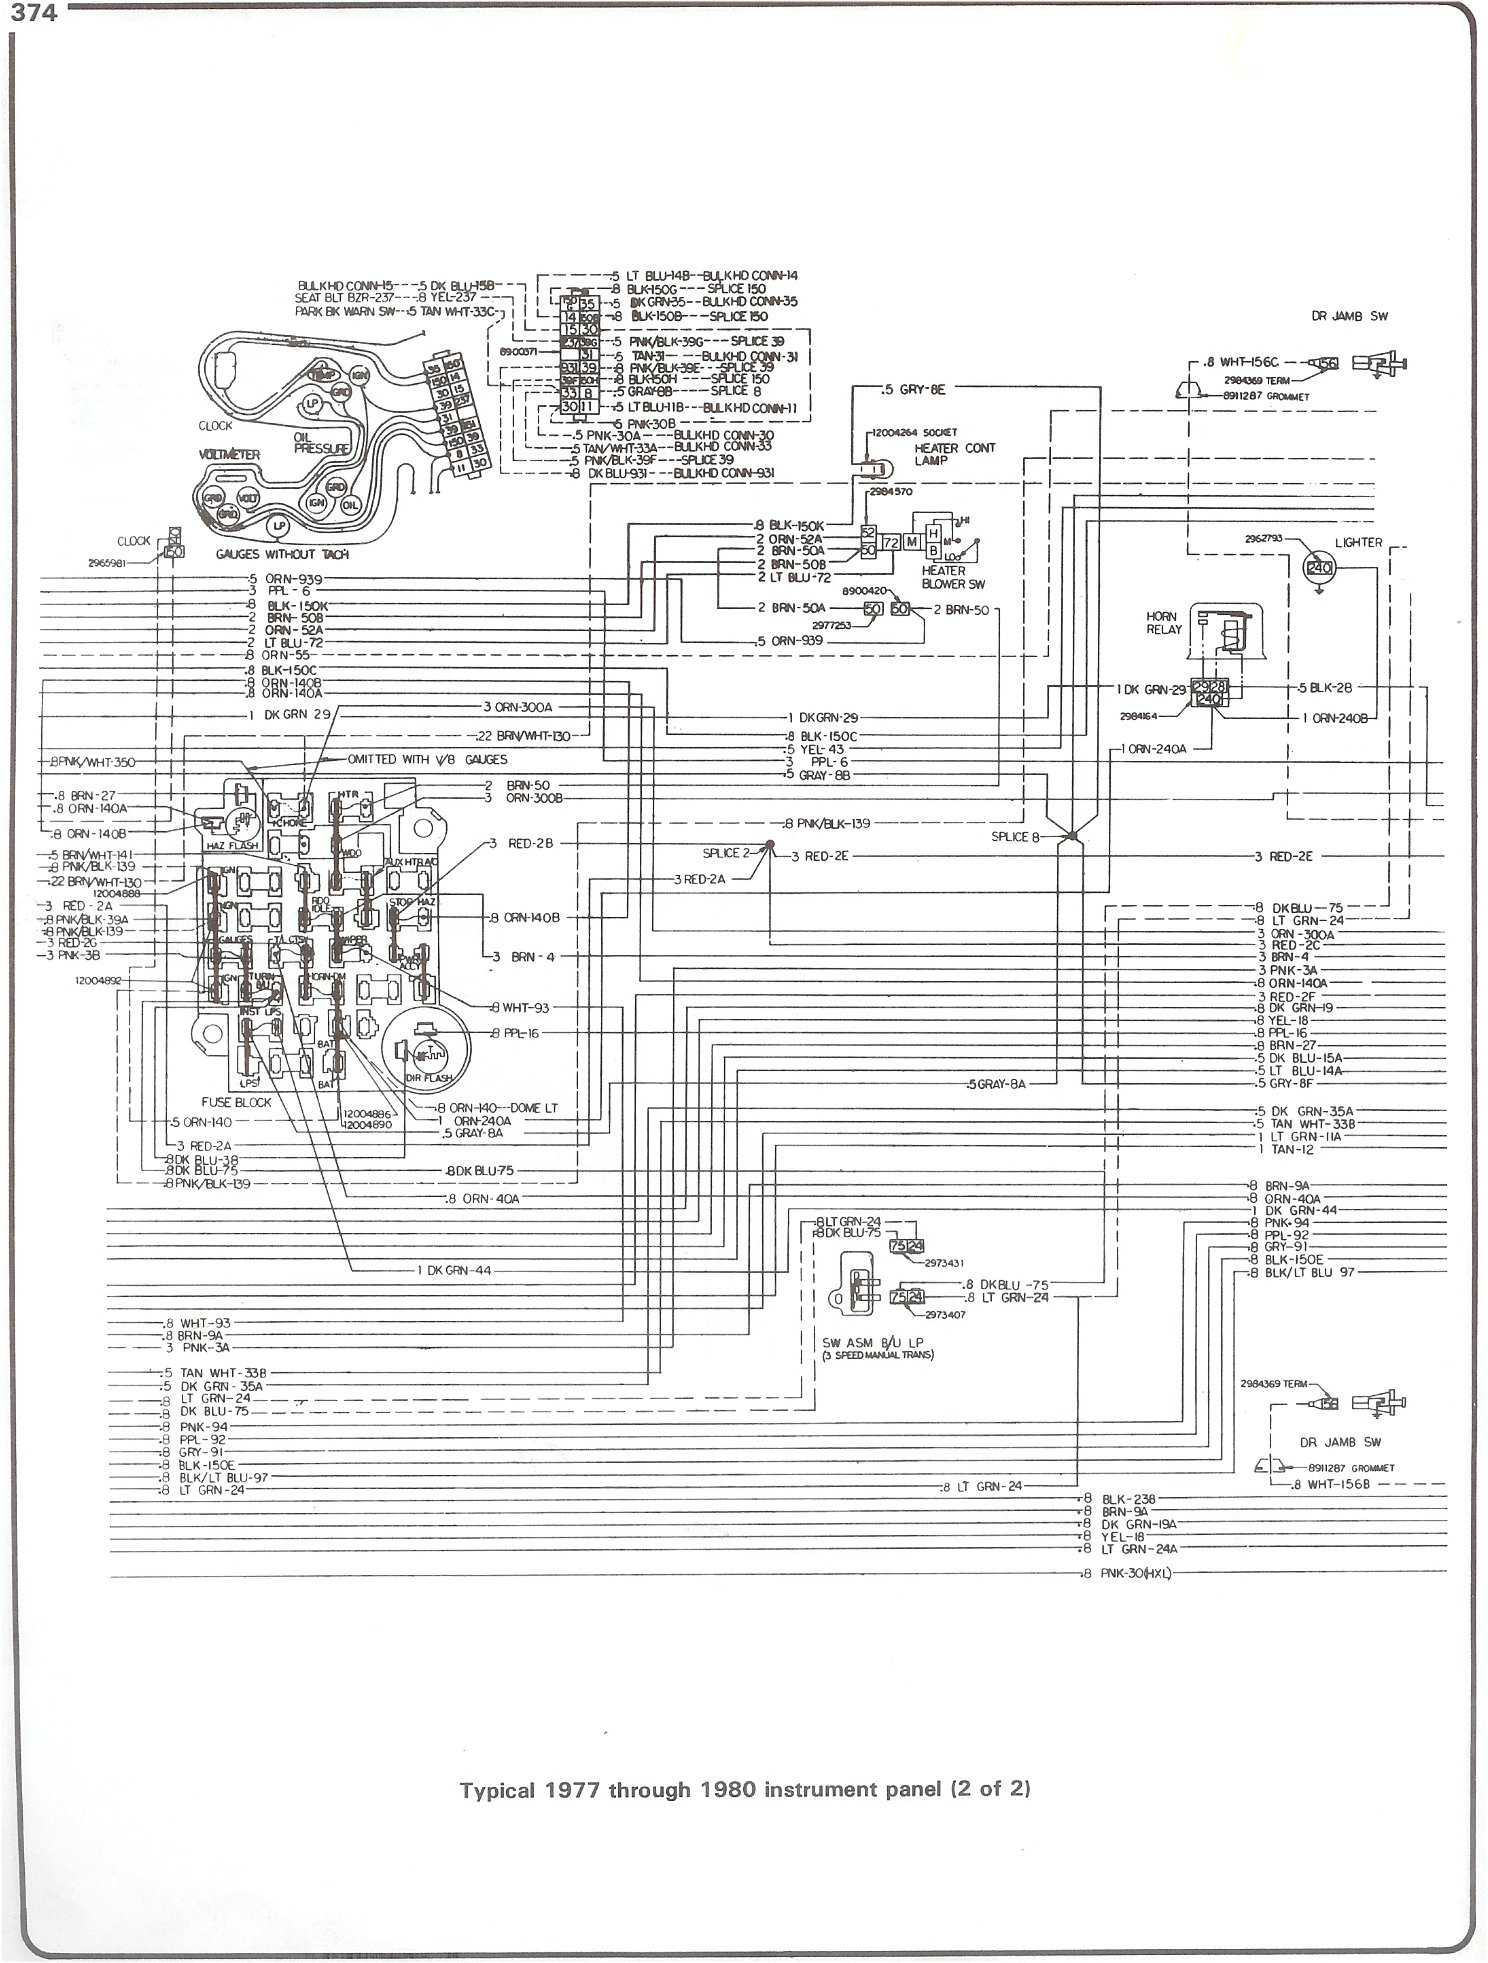 1986 Gmc Sierra Fuse Box Suburban Basic Guide Wiring Diagram On 91 Complete 73 87 Diagrams Rh Forum 87chevytrucks Com 1991 Truck Panel